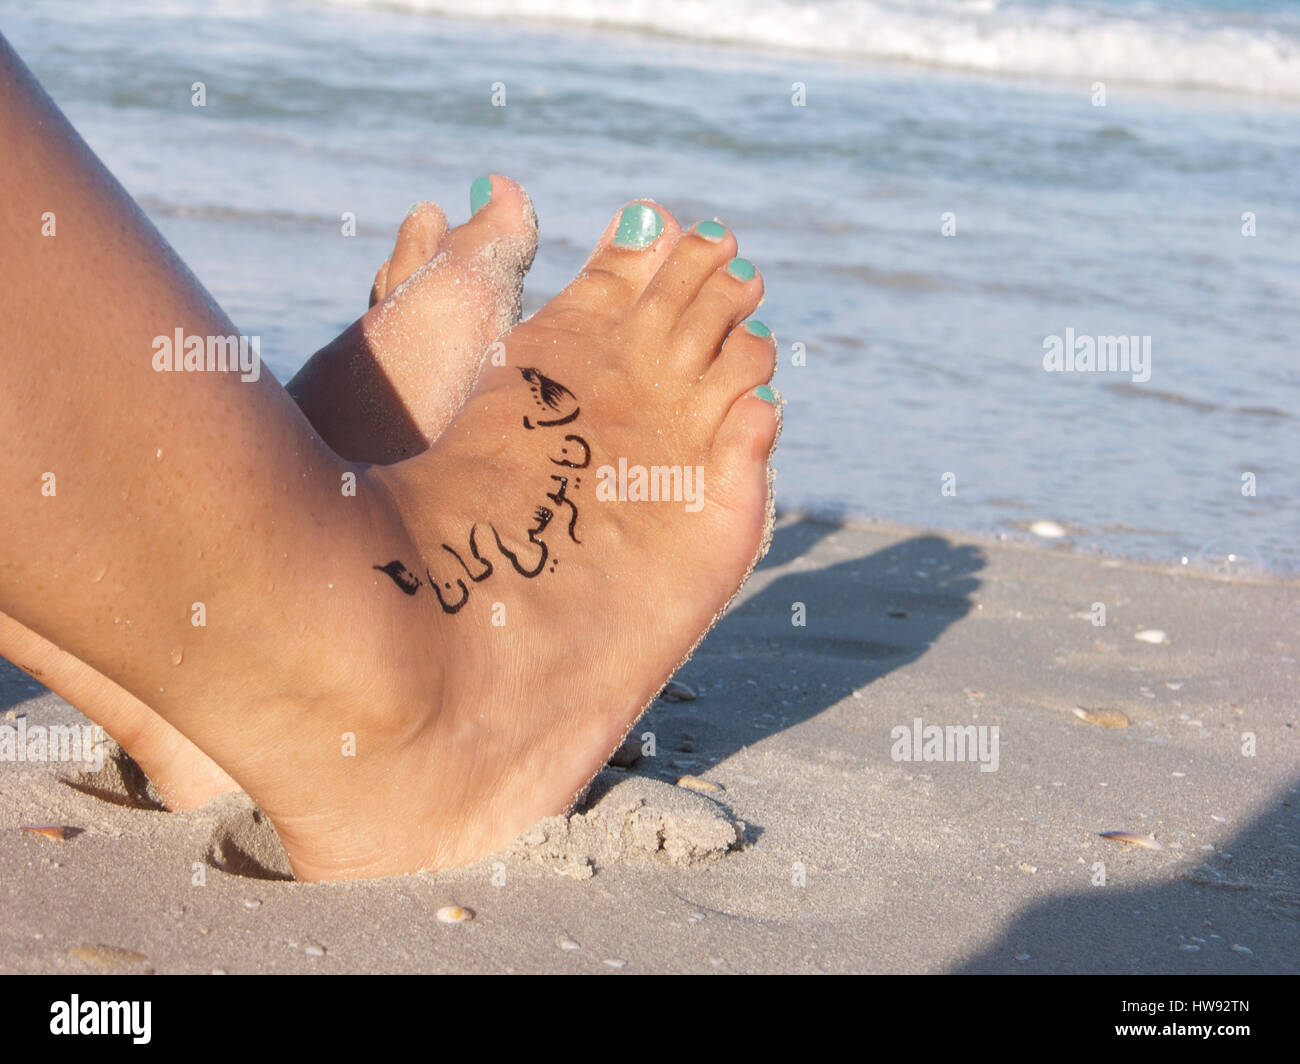 fu tattoo mit arabischem text am strand stockfoto bild 136038805 alamy. Black Bedroom Furniture Sets. Home Design Ideas